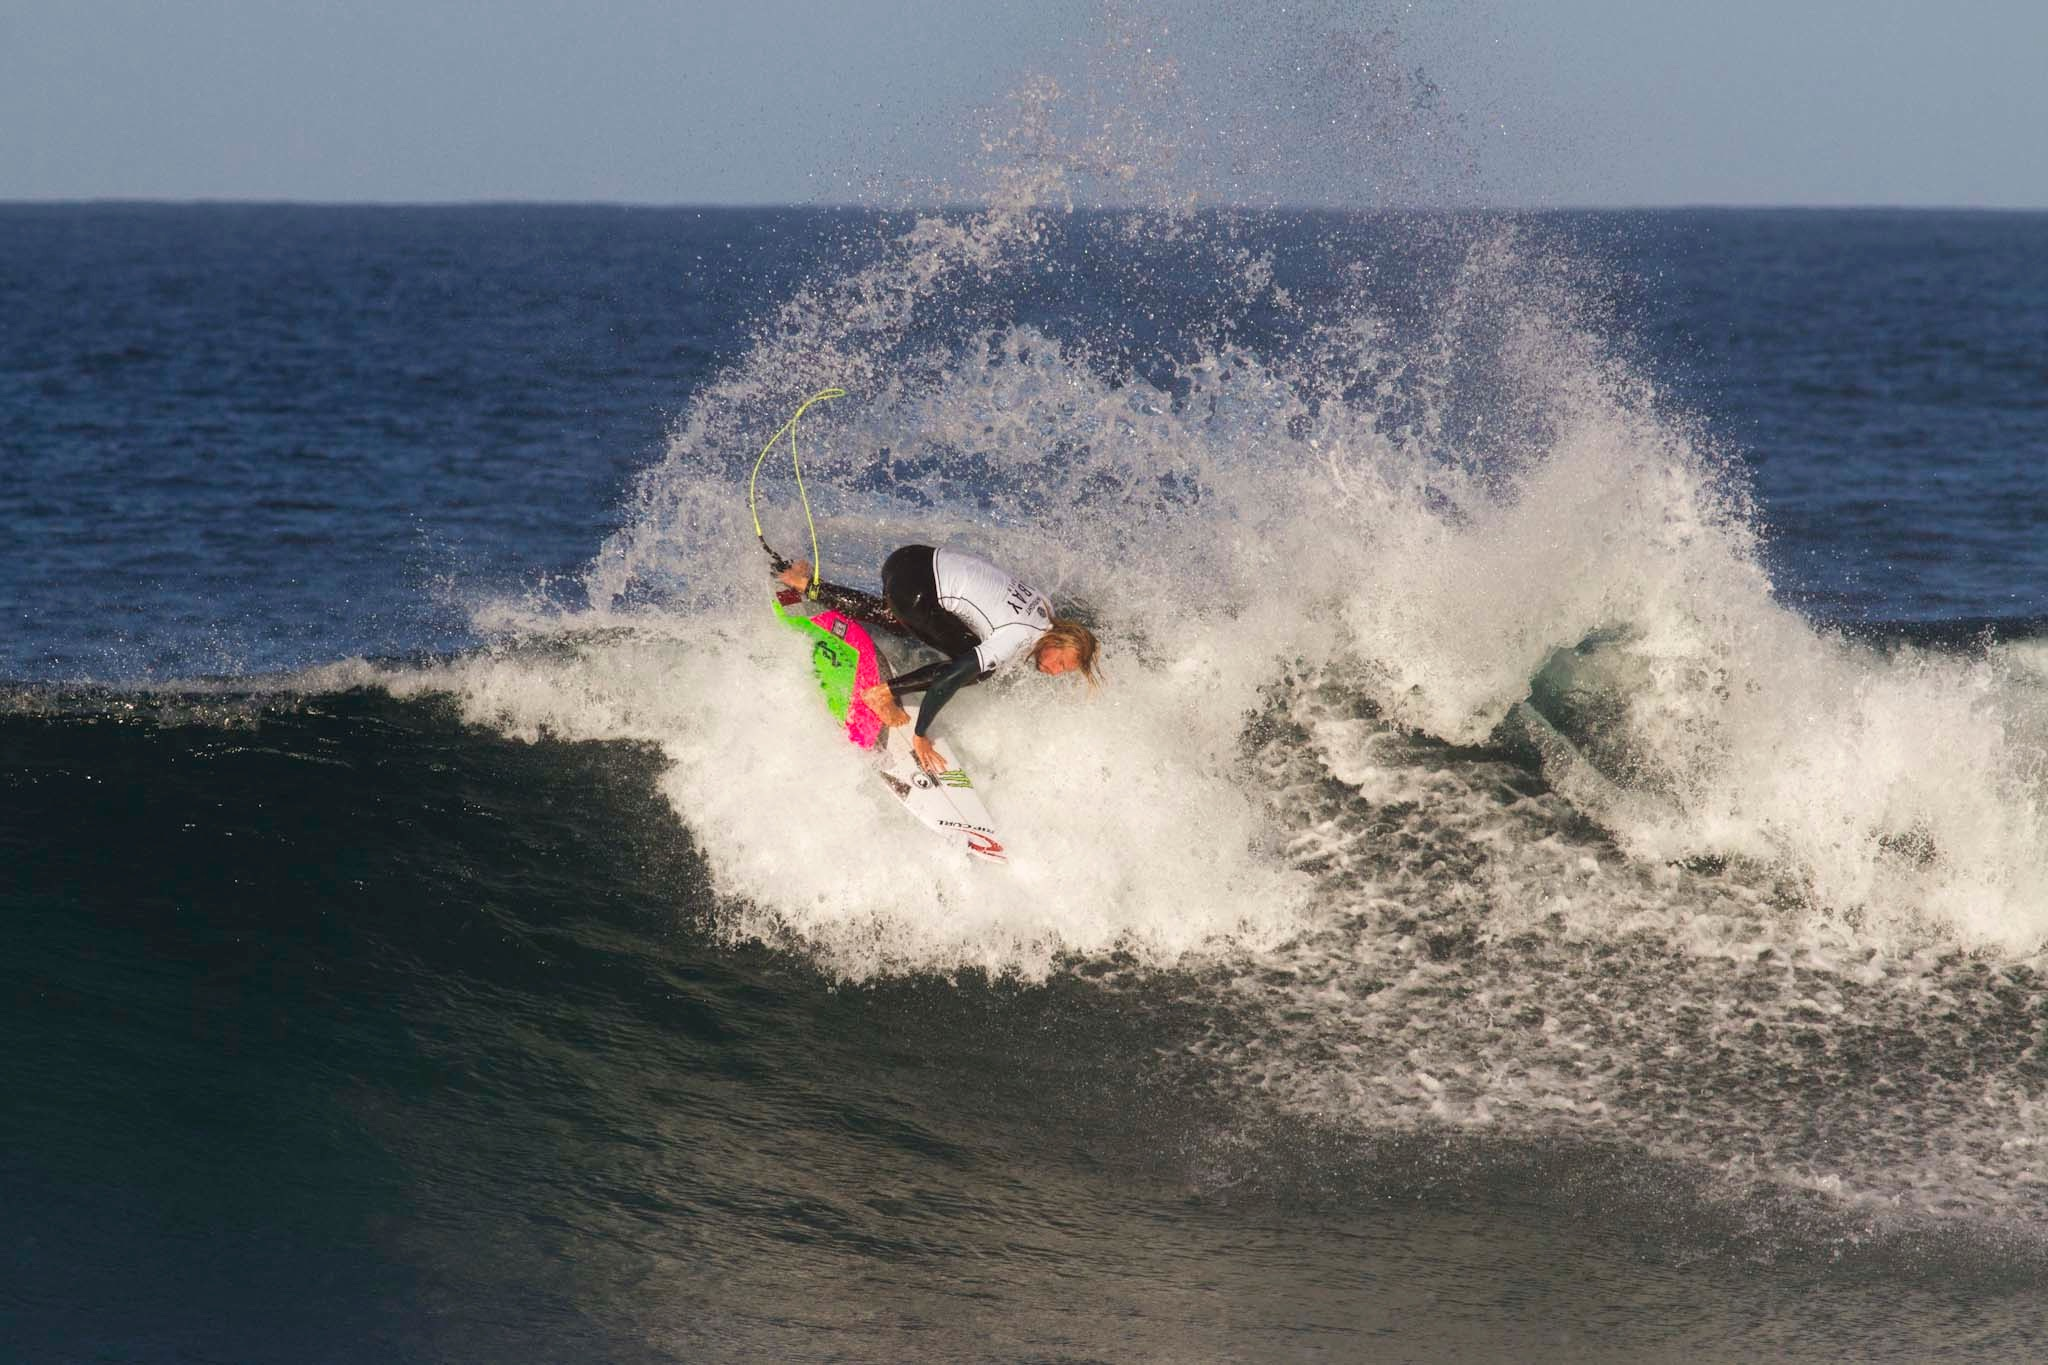 Highlights from day 3 of the J Bay Open of Surfing